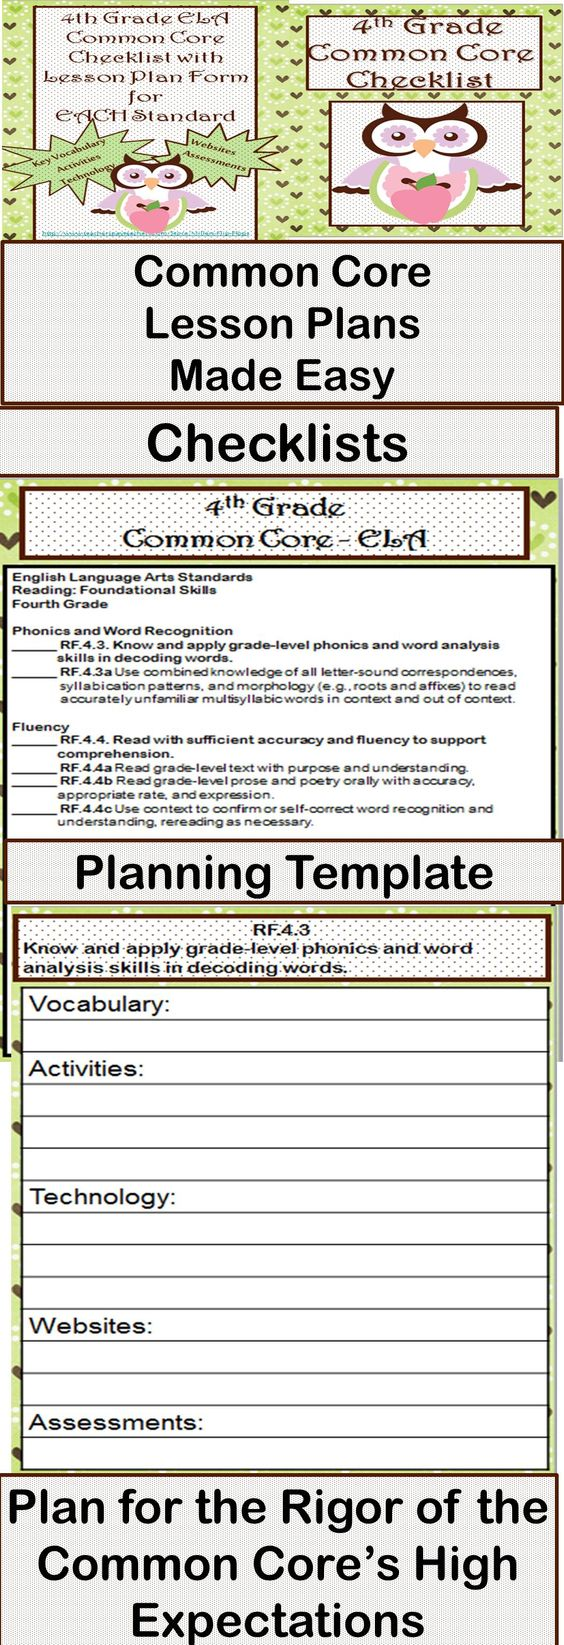 Lesson planning templates common cores and high for Lesson plan template using common core standards